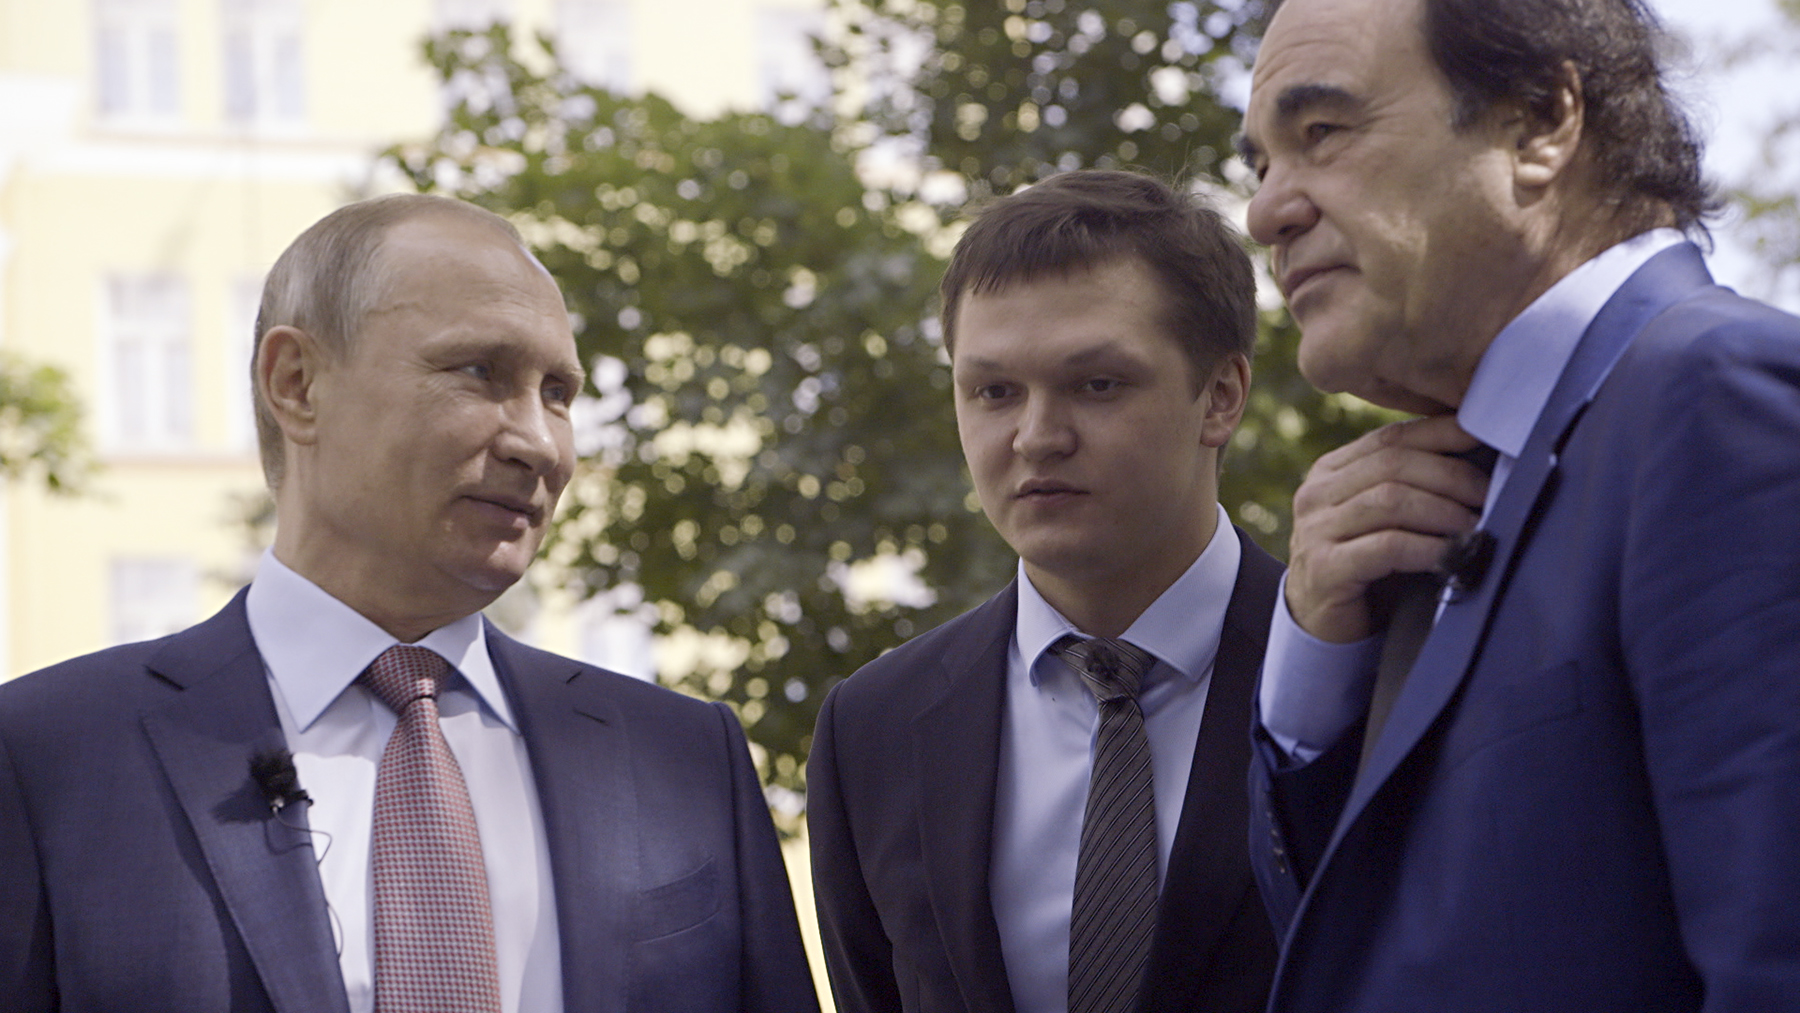 A scene from the Showtime documentary THE PUTIN INTERVIEWS. - Photo:  Komandir/Courtesy of SHOWTIME  Pictured:  Russian President Vladimir Putin, interpreter Sergei Chudinov and Oliver Stone